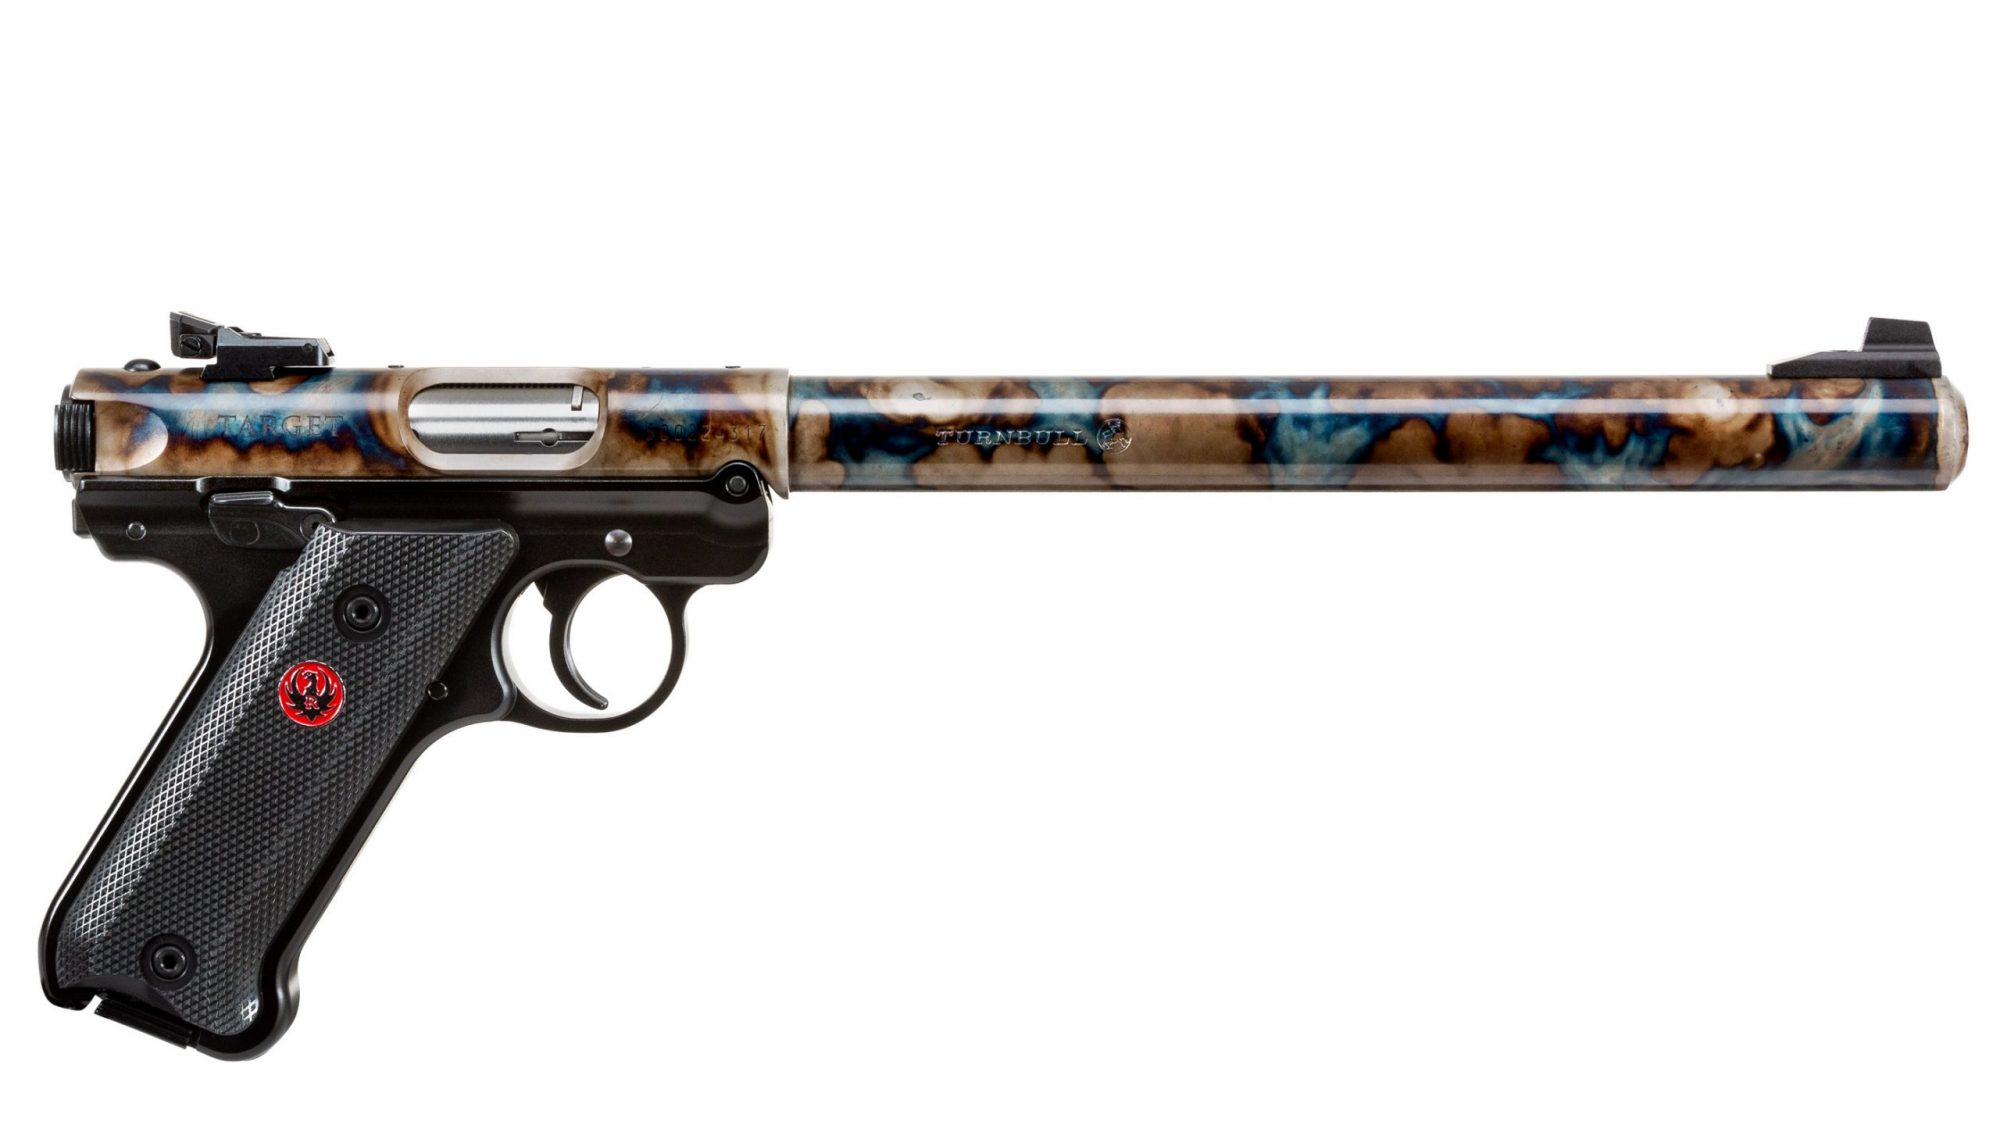 """Photo of a Turnbull Finished Ruger Mark IV Target model with 10"""" barrel, featuring traditional bone charcoal color case hardening by Turnbull Restoration of Bloomfield, NY"""